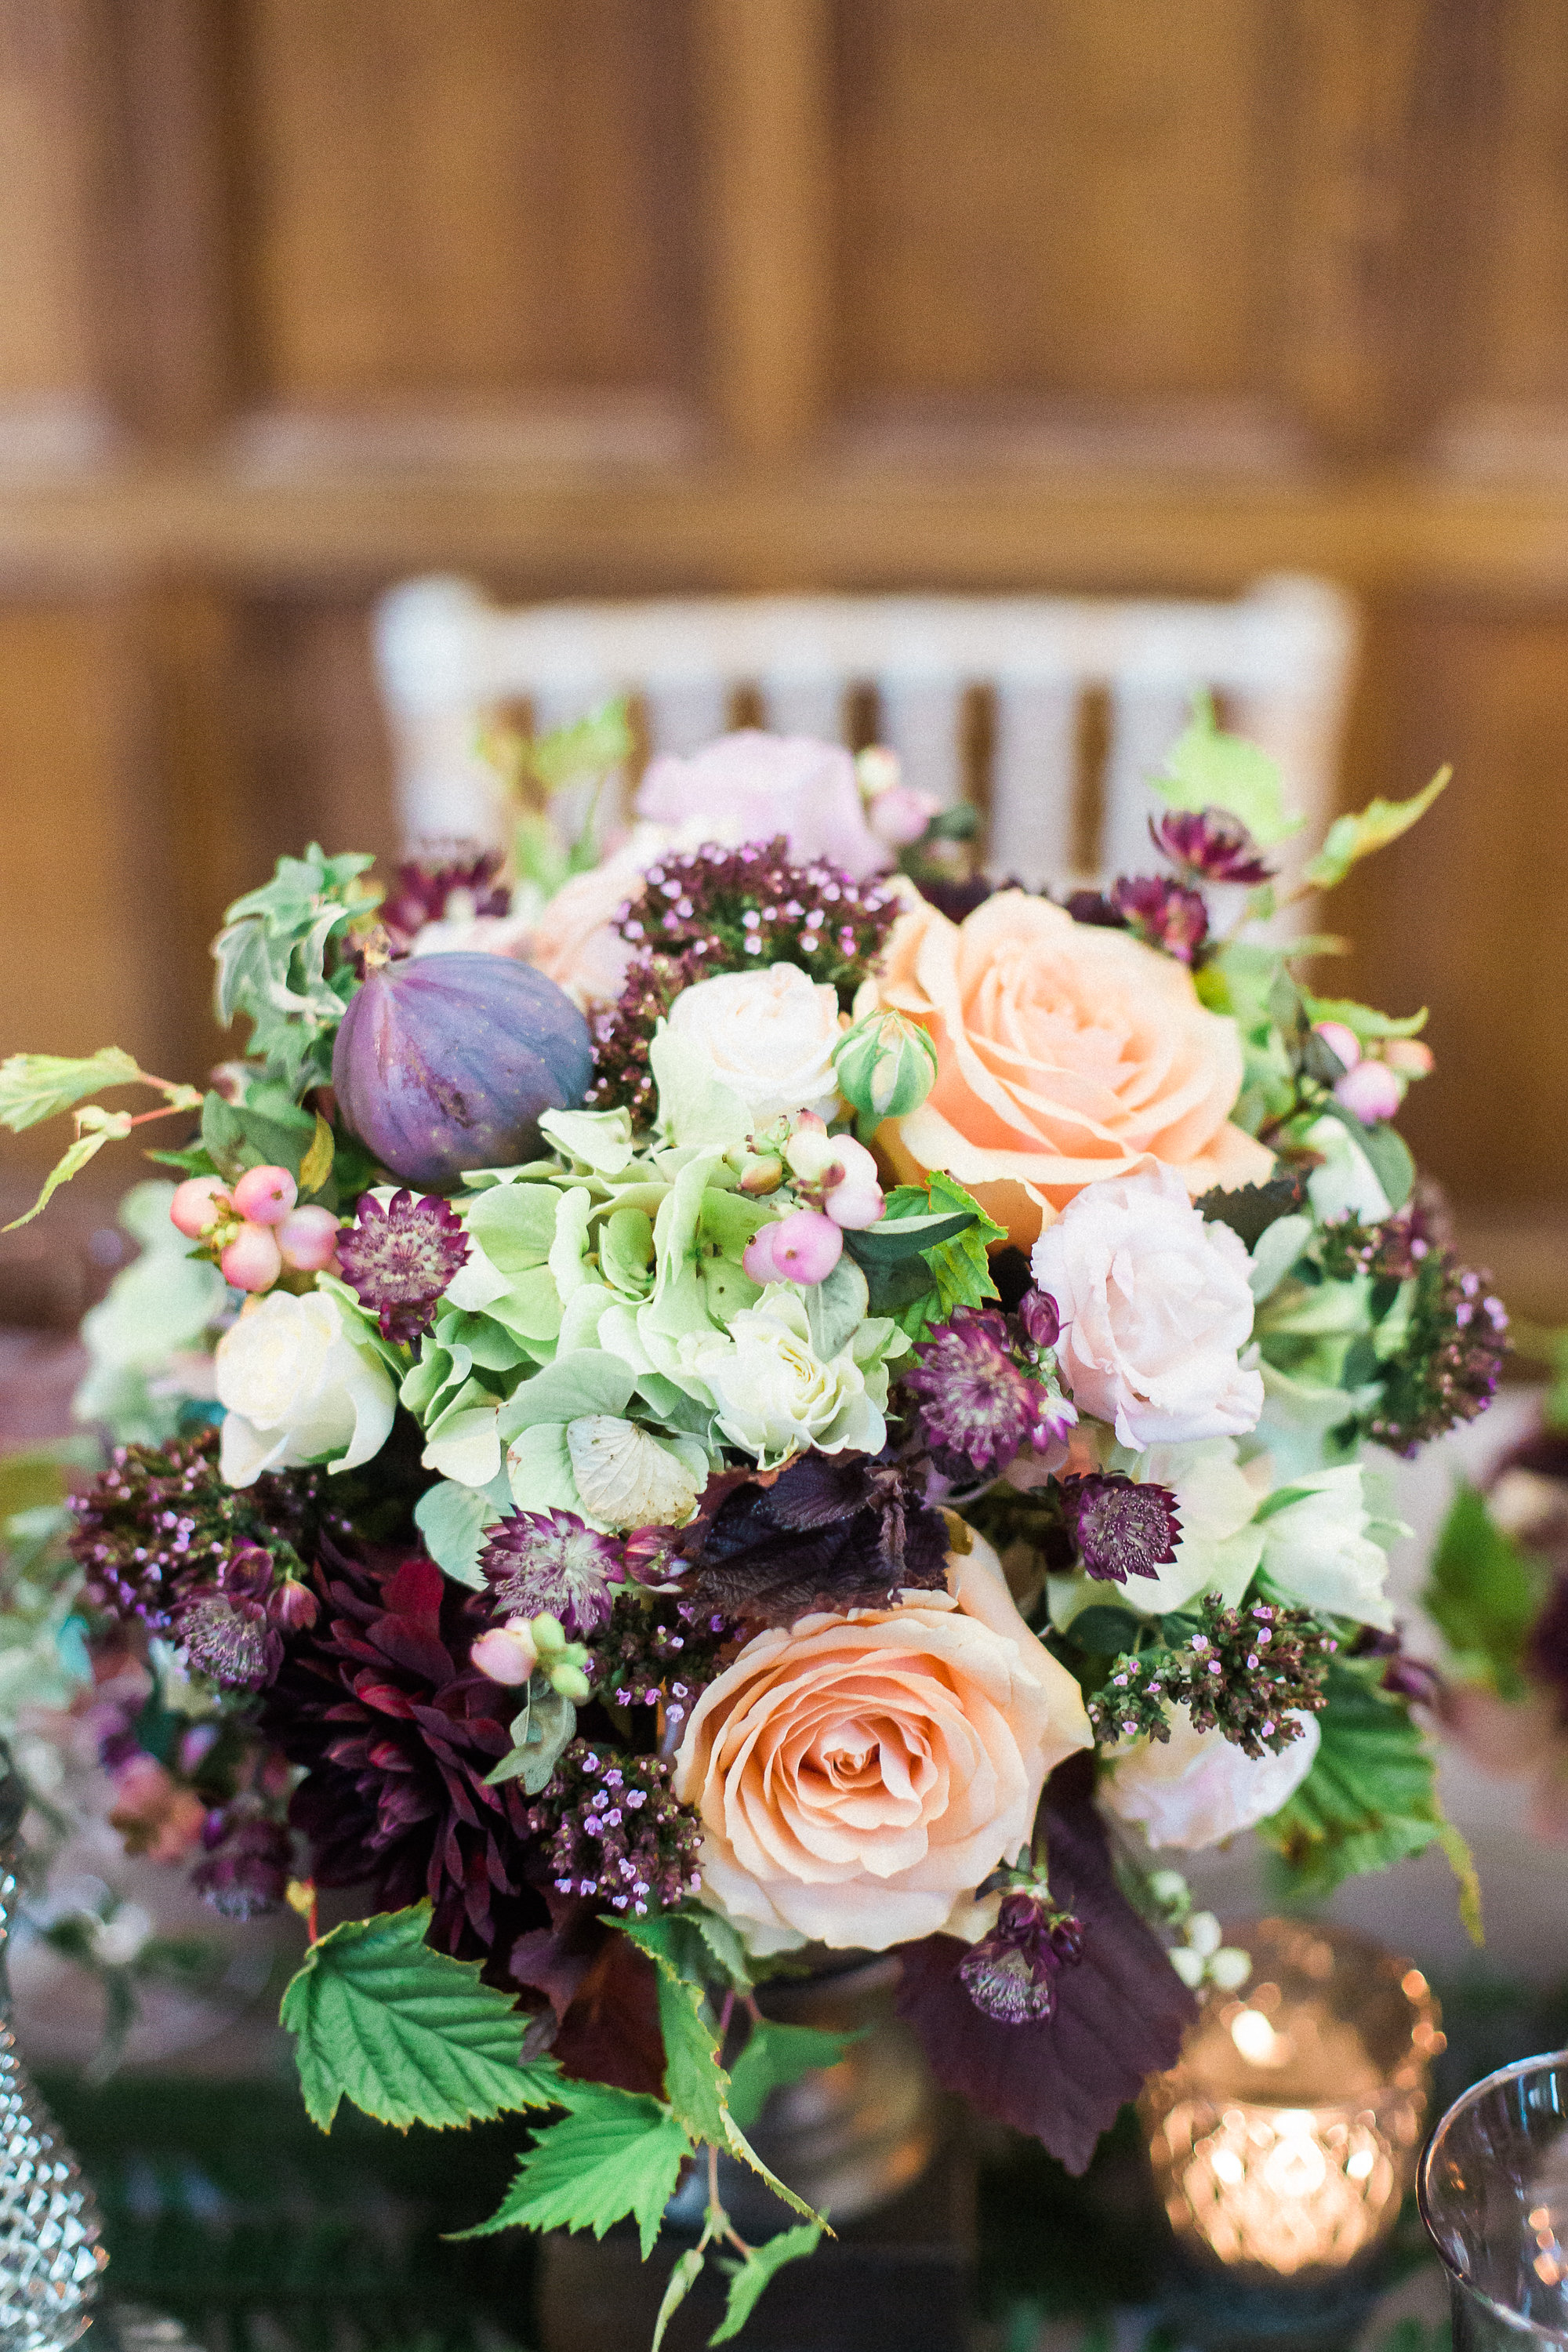 A close-up by Xander & Thea of MJV's gorgeous arrangement for our botanical styled shoot at Middle Temple Hall